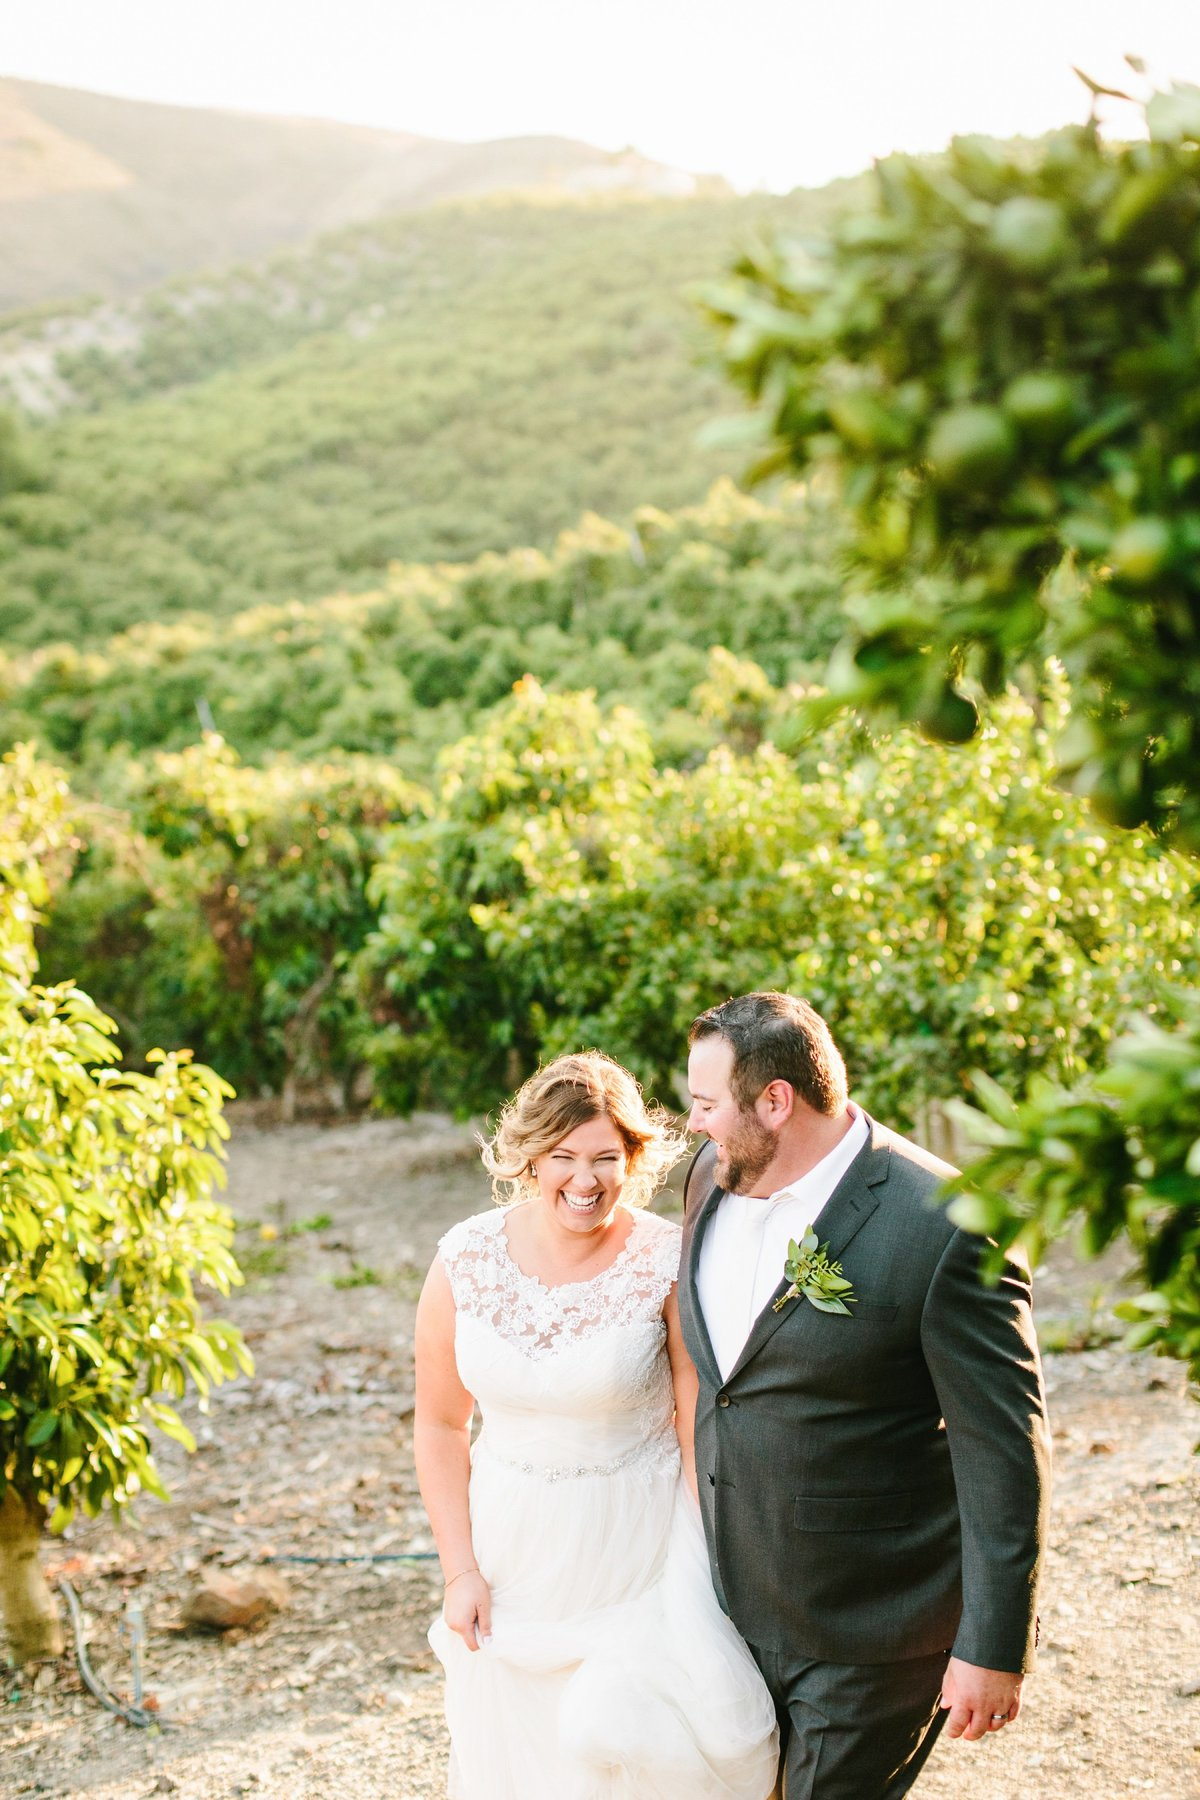 Best California Wedding Photographer-Jodee Debes Photography-175